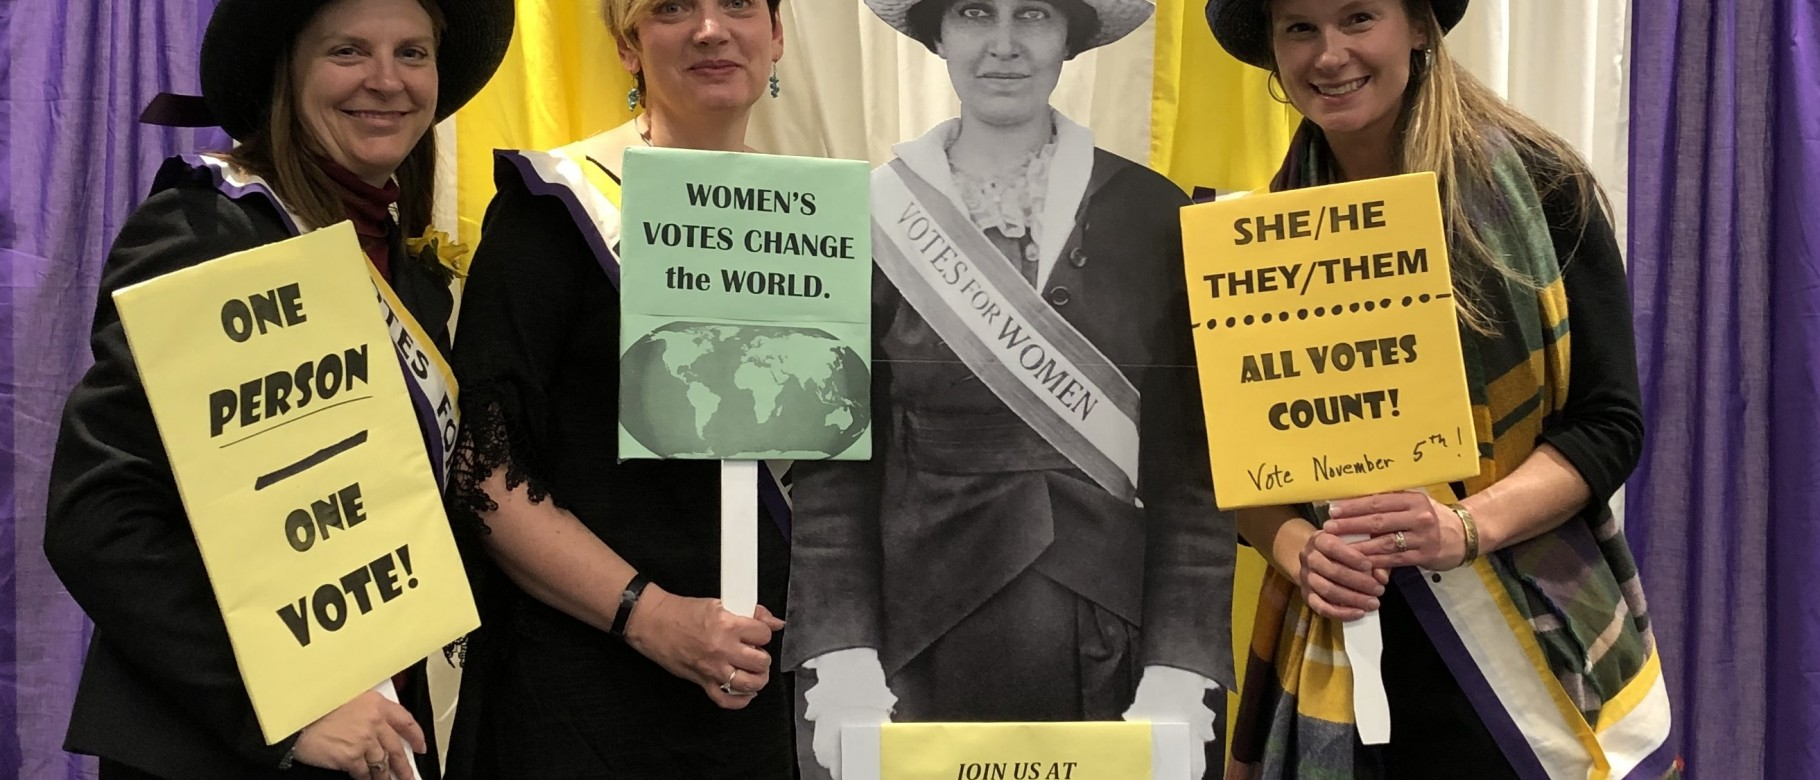 Attendees pose with an image of Katharine Dexter McCormick of the National Woman's Suffrage Association